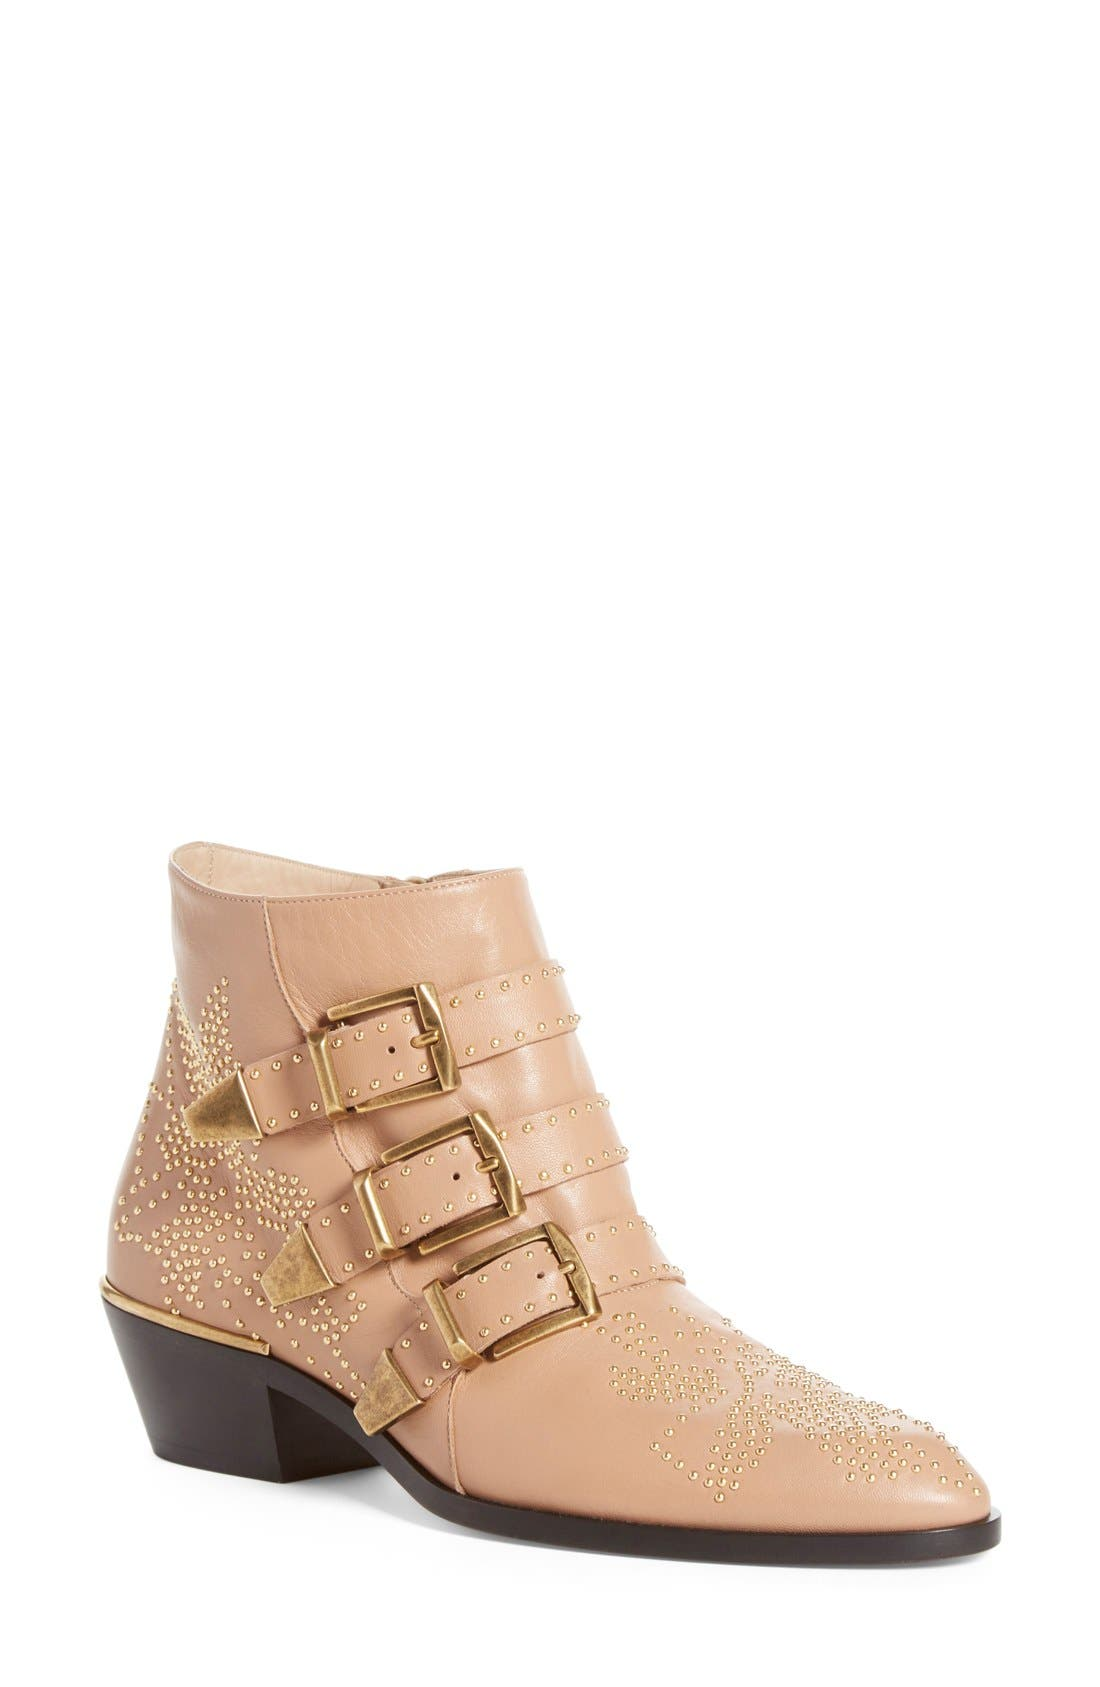 Susanna Stud Buckle Bootie,                             Main thumbnail 1, color,                             Beige Gold Leather